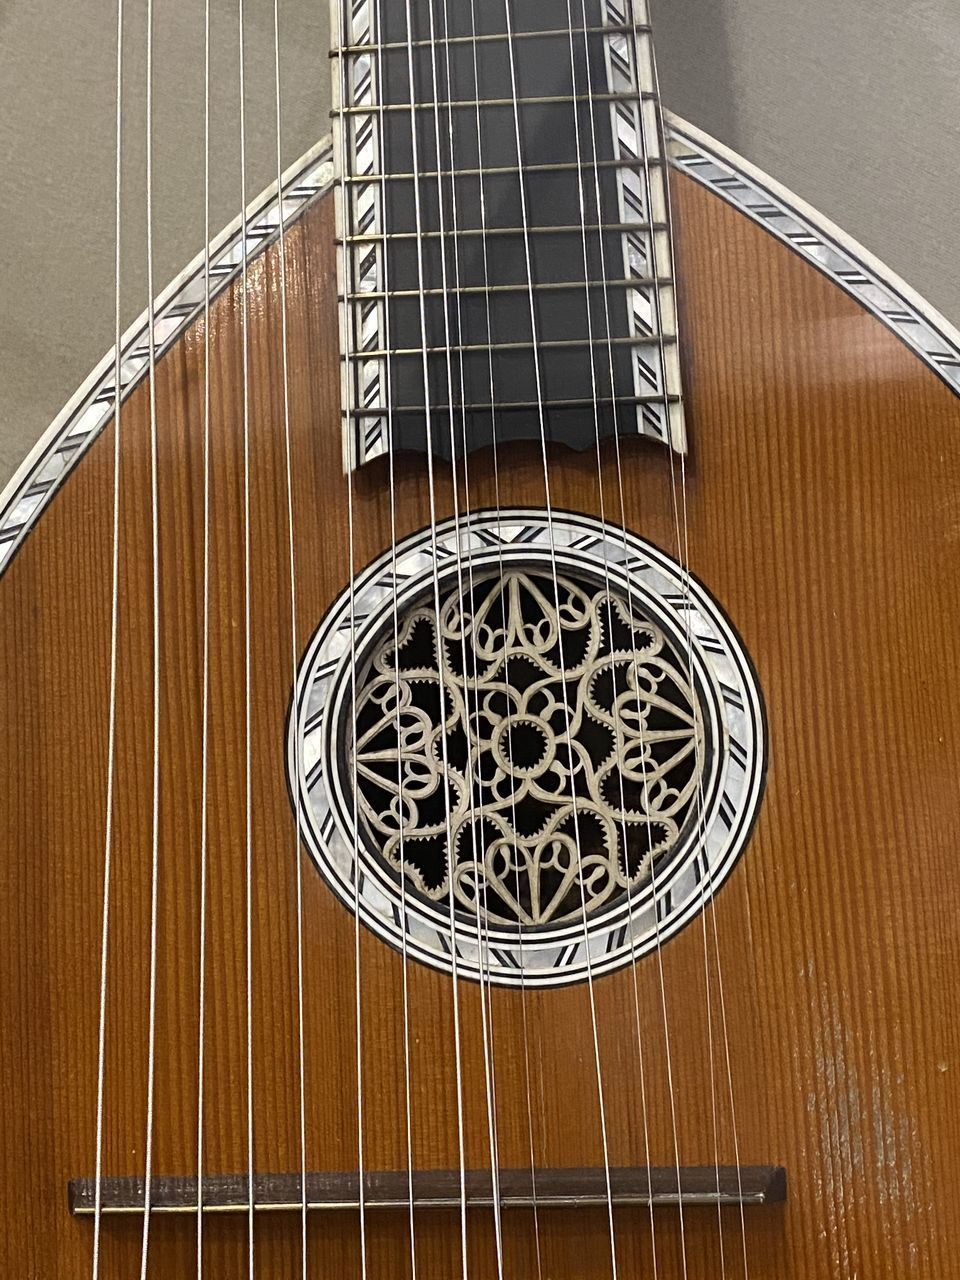 indoors, no people, wood - material, musical equipment, close-up, musical instrument string, musical instrument, string instrument, metal, string, music, arts culture and entertainment, table, high angle view, brown, day, pattern, directly above, architecture